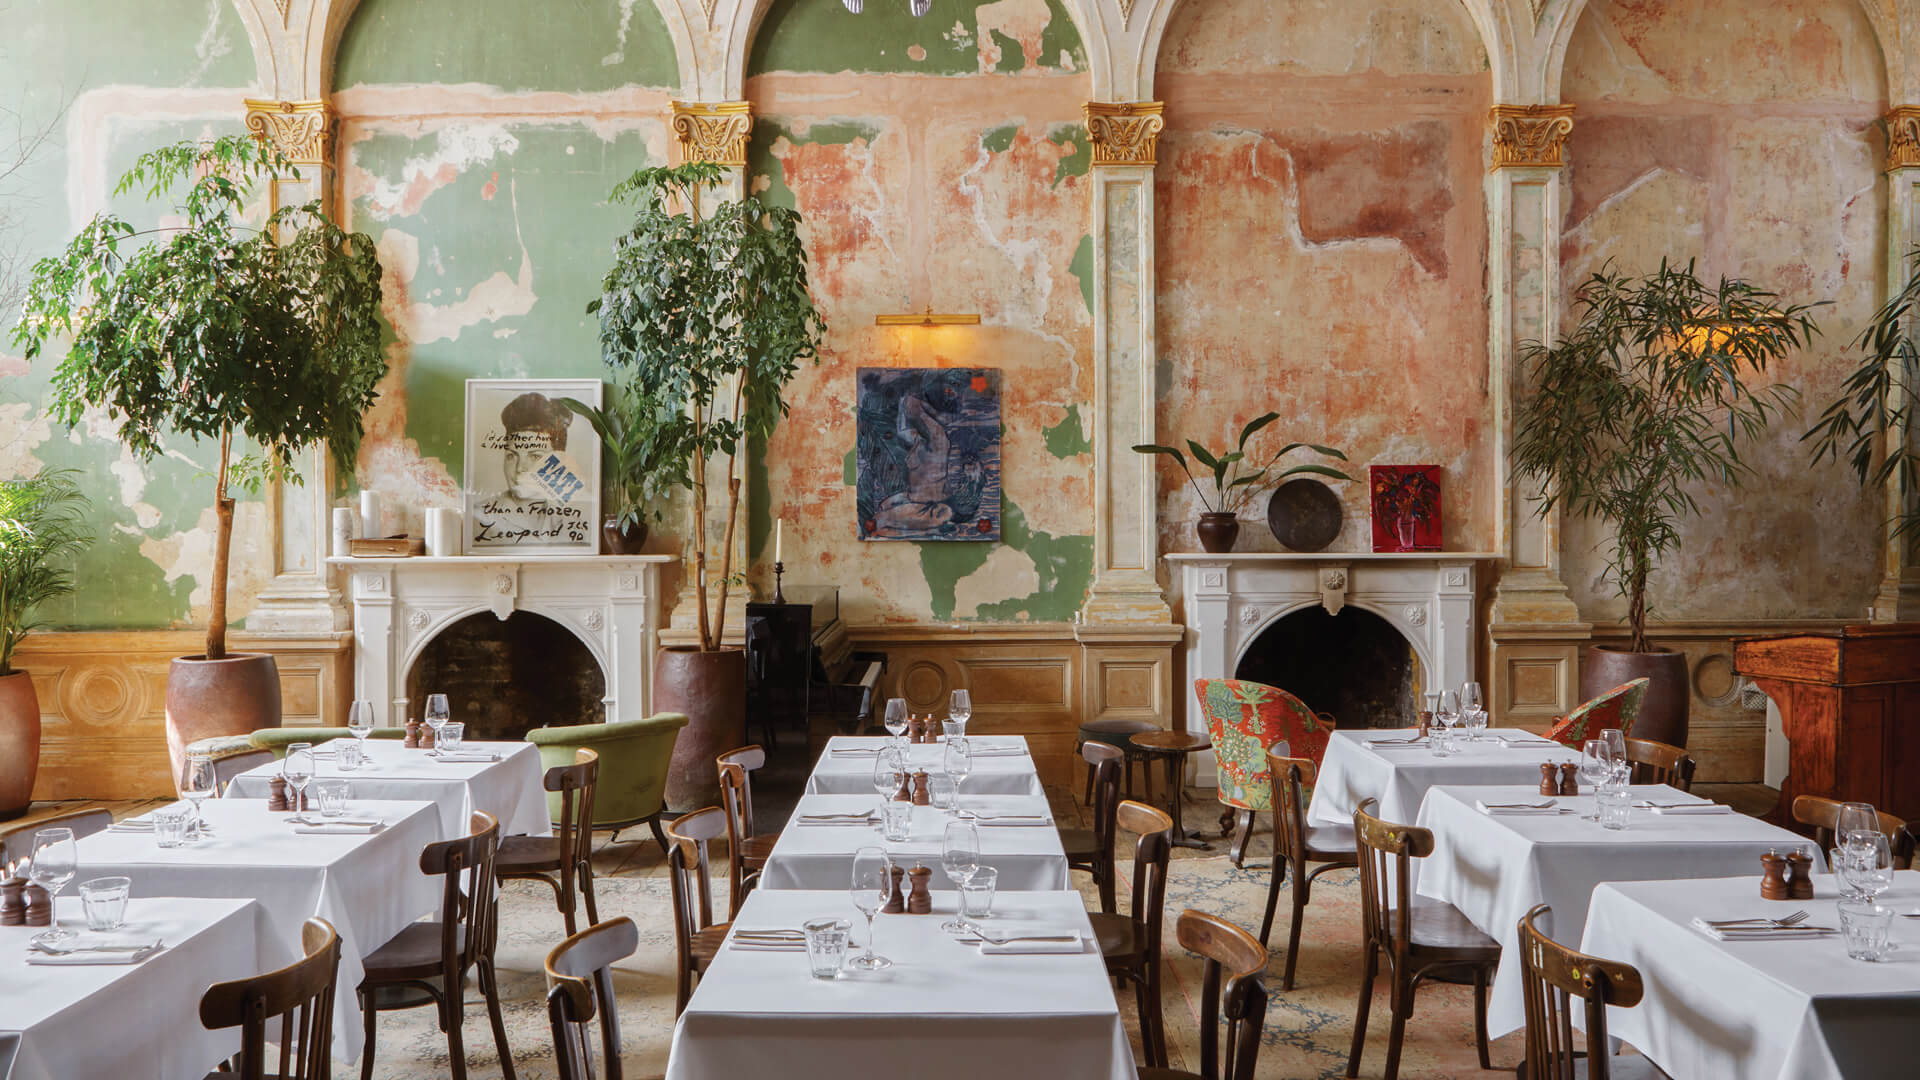 Sessions Arts Club in London brings together the best of art, design and food under one roof | Sessions Arts Club | Cabin Studios, Sätila Studios and SODA Studio| STIRworld